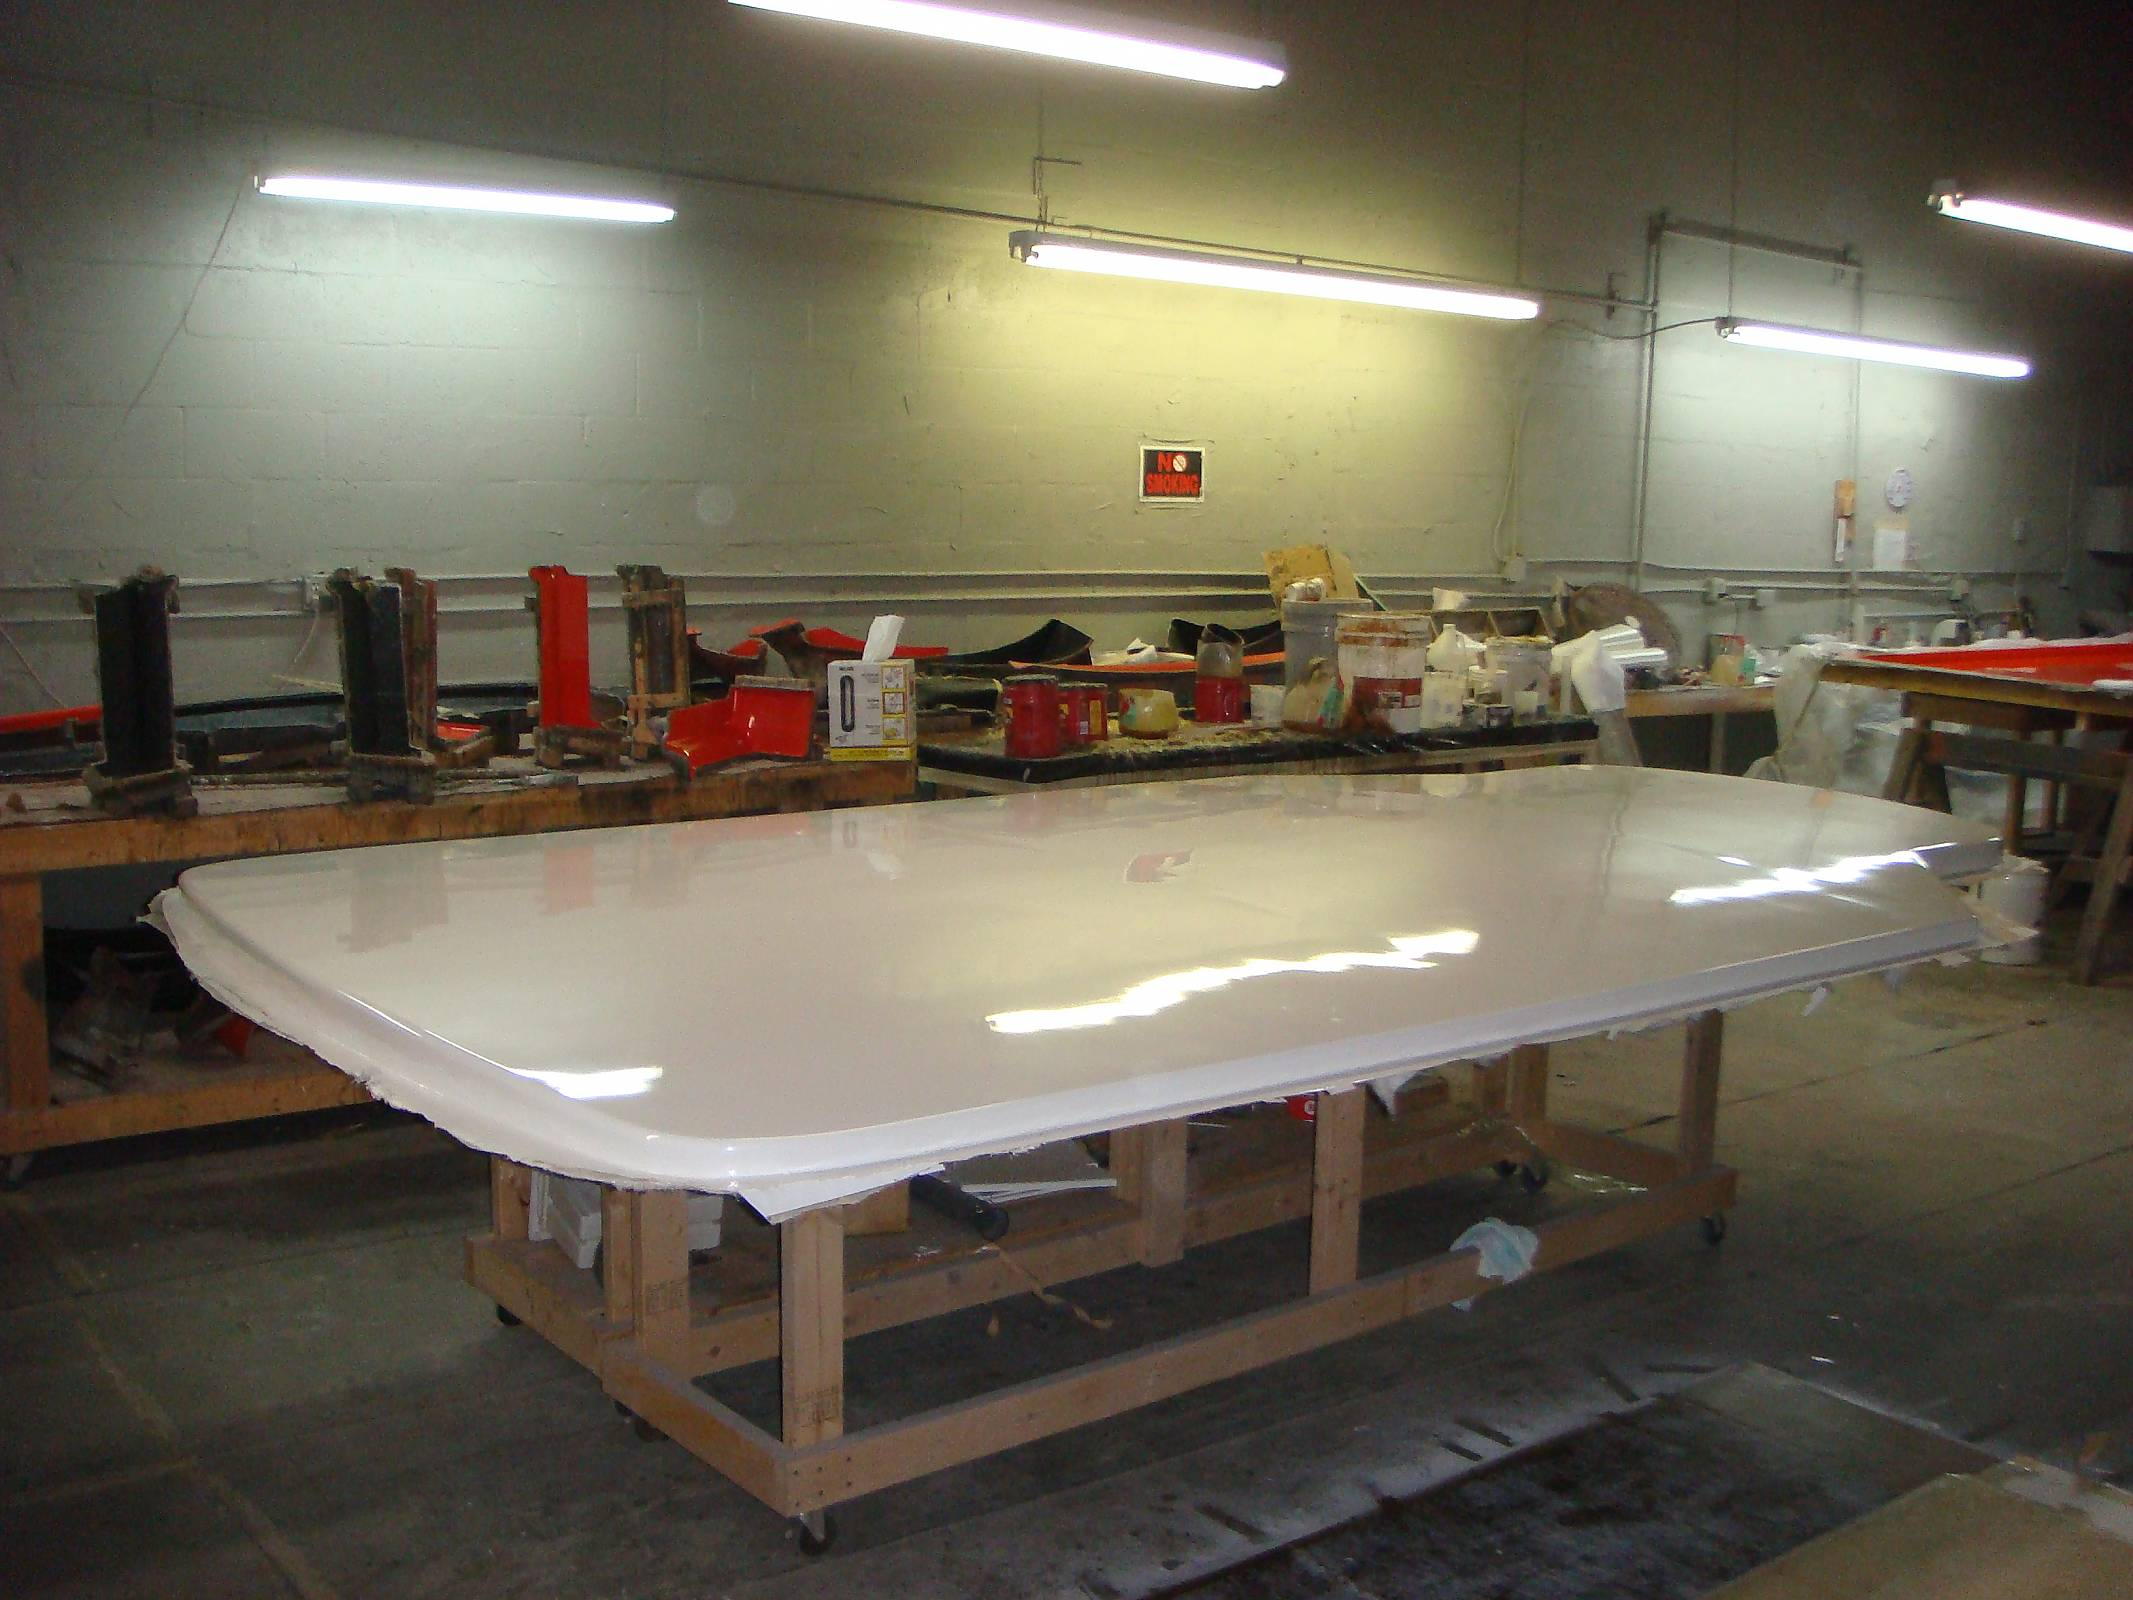 Boat Fiberglass Hard Top Mold For Sale - 3 Different Sizes